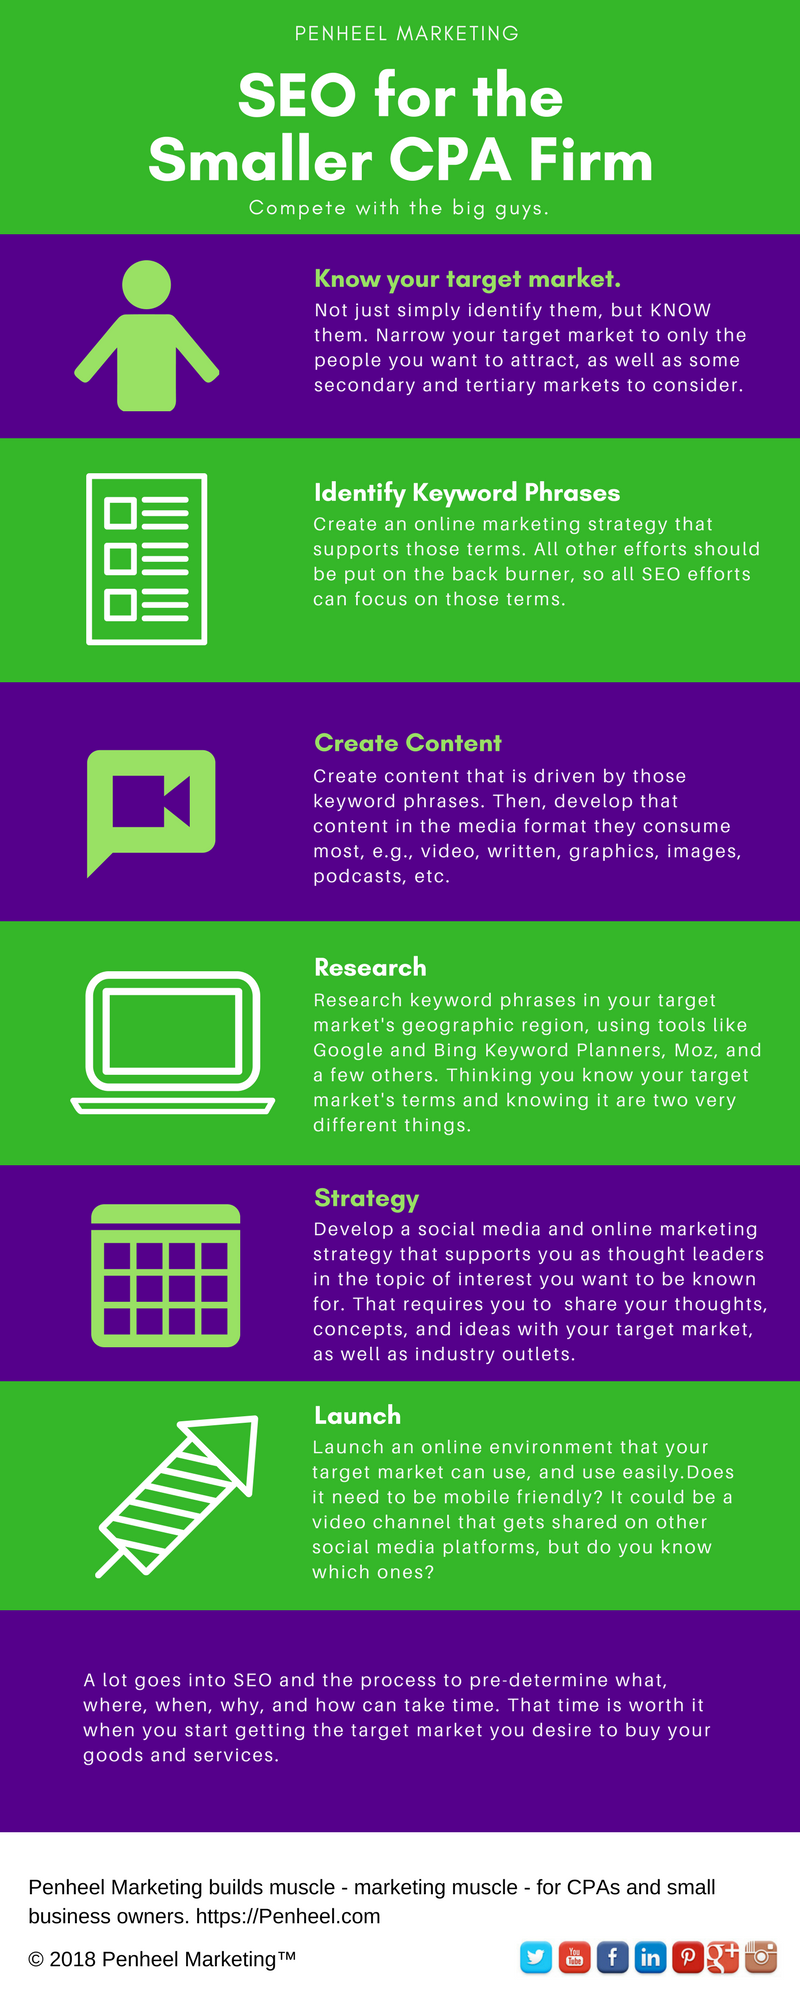 SEO for the Smaller CPA Firm Infographic